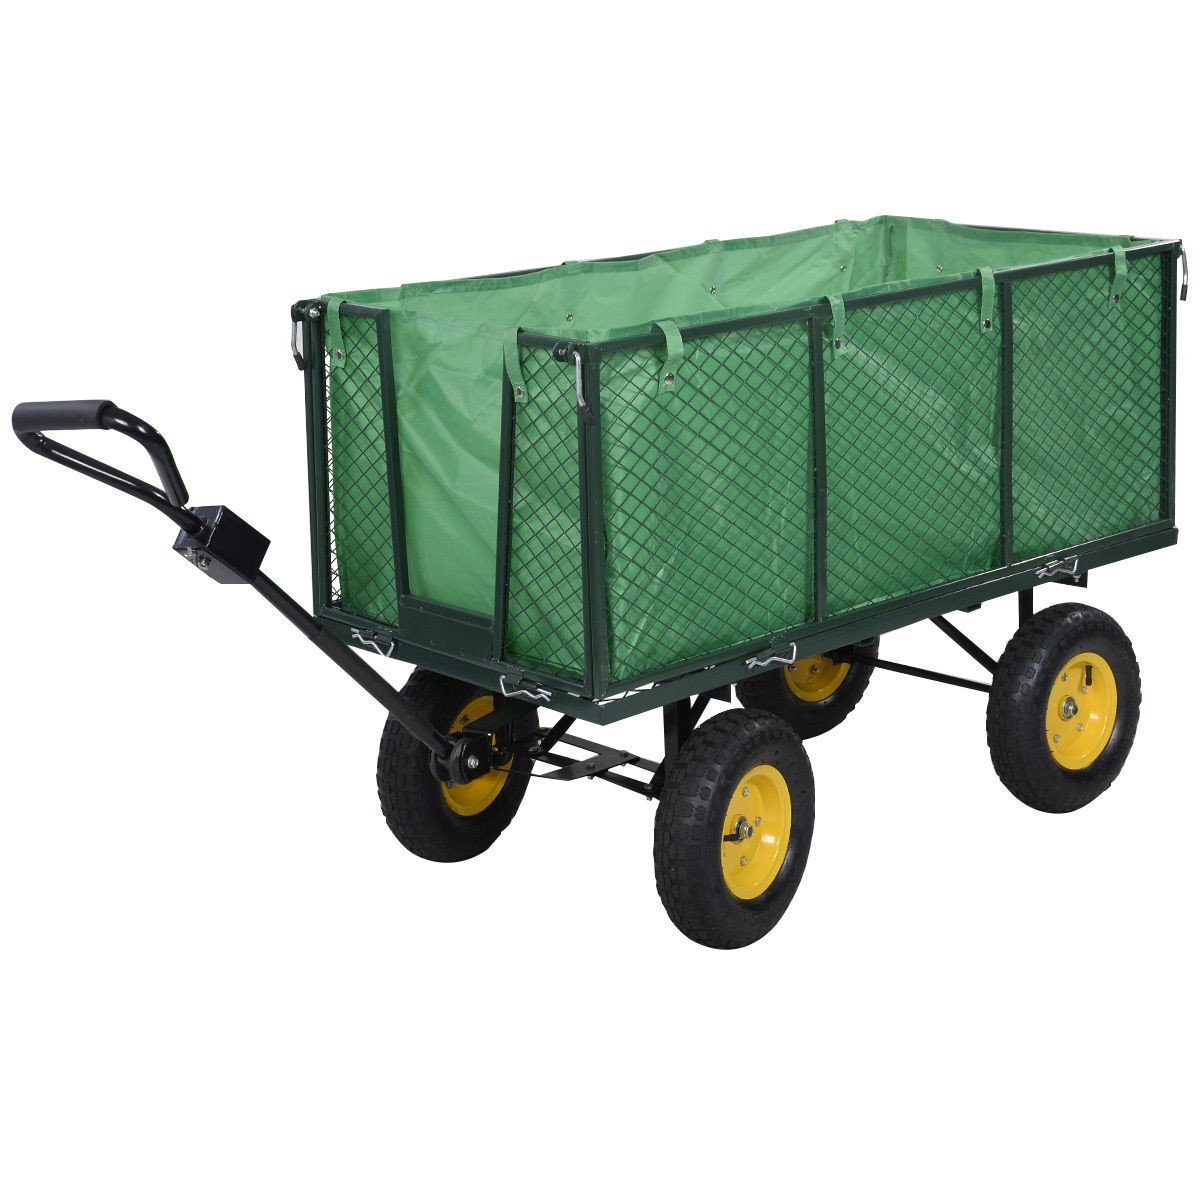 Genial Large Collapsible Utility Wagon Garden Cart Shopping Buggy Yard Beach Heavy  Duty